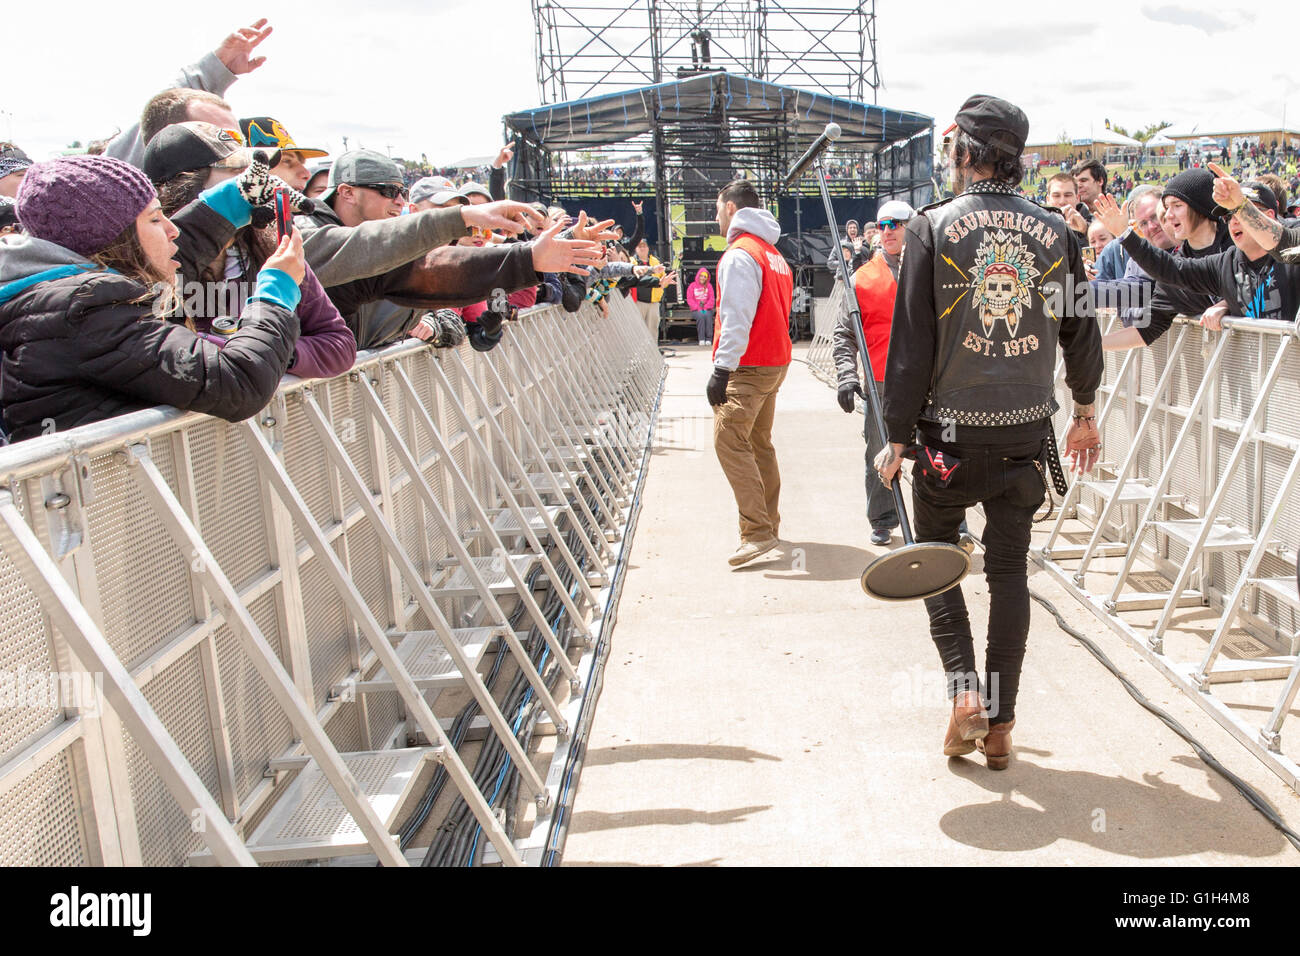 Somerset, Wisconsin, USA. 14th May, 2016. Rapper YELAWOLF walks through the crowd at Somerset Amphitheater during - Stock Image